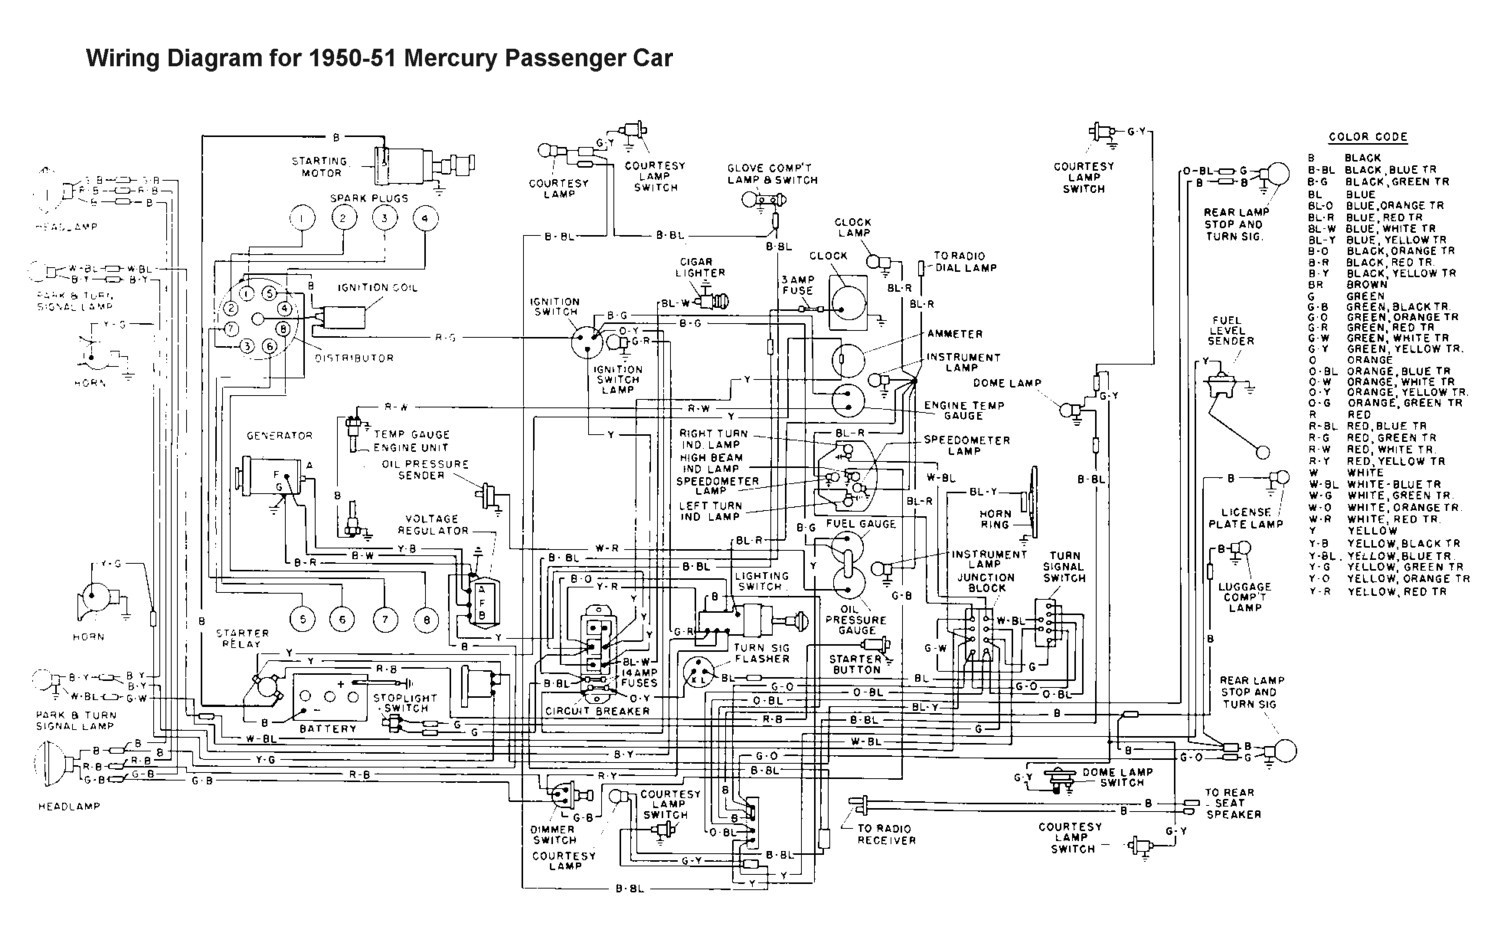 51 Mercury Wiring Diagram - wiring diagrams schematics